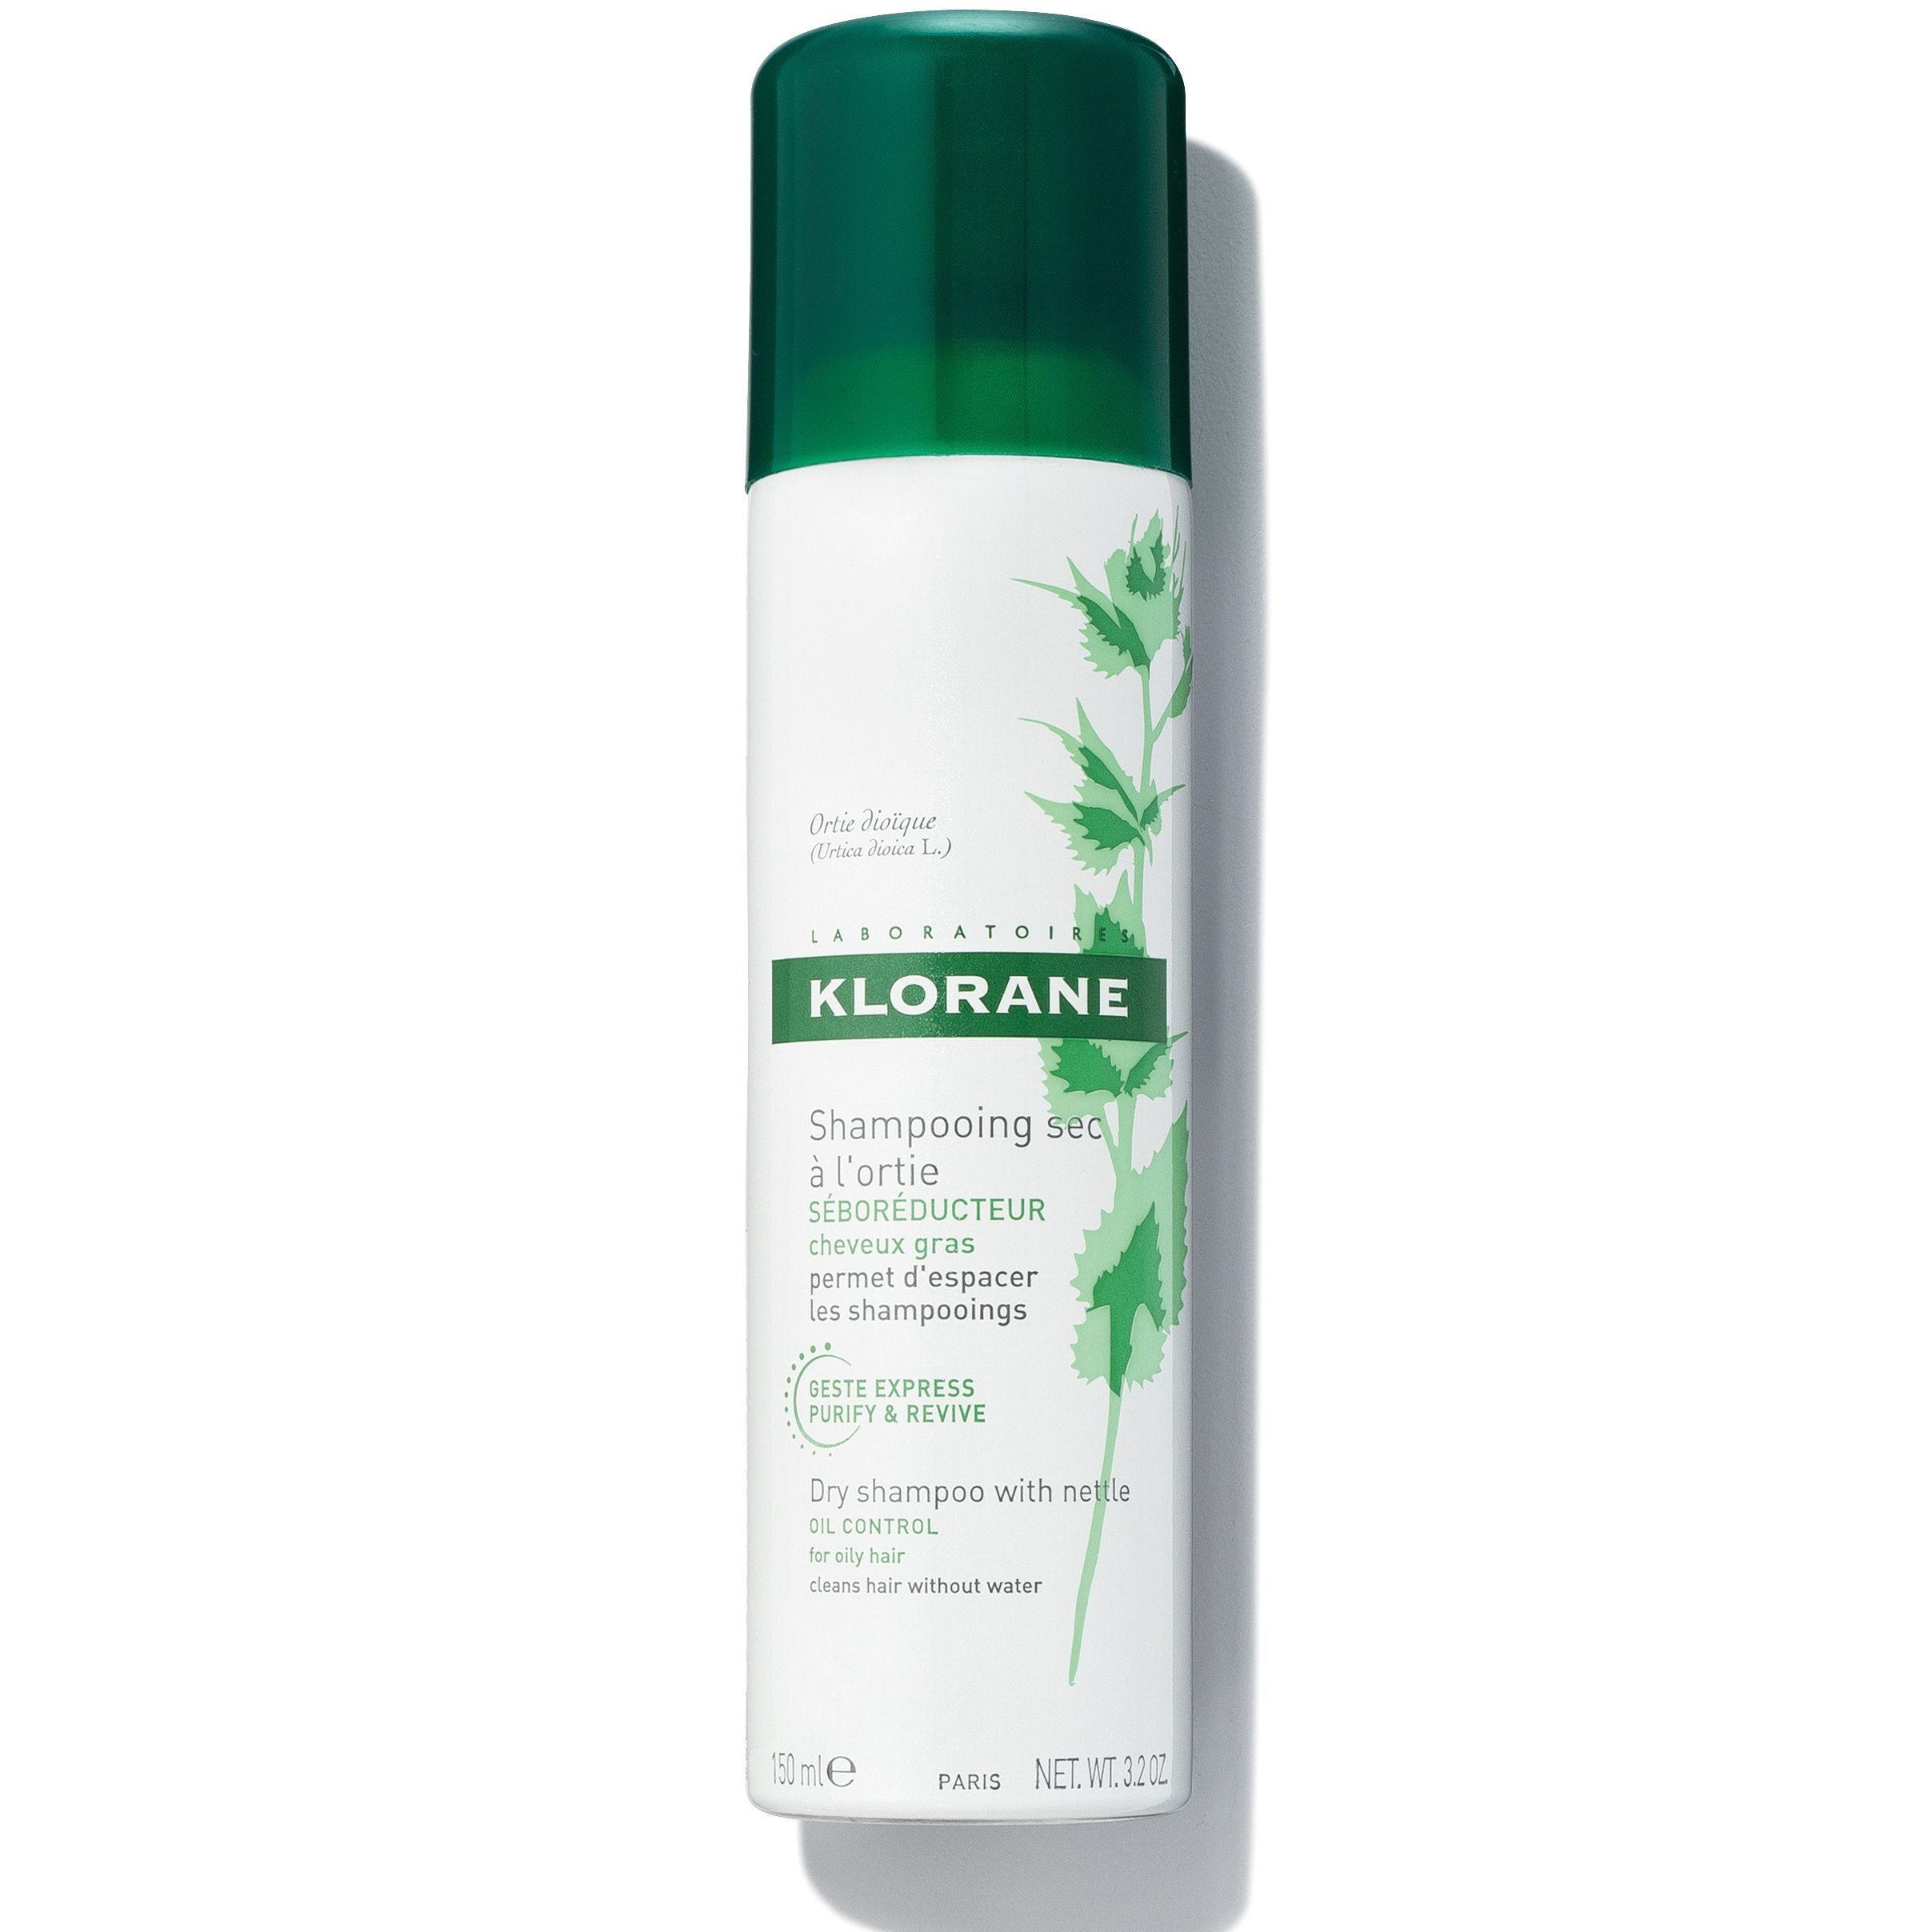 3. Klorane Shampoo Ultra-Gentle-Residue Fragrance - Best Dry Shampoo for Sensitive Scalps